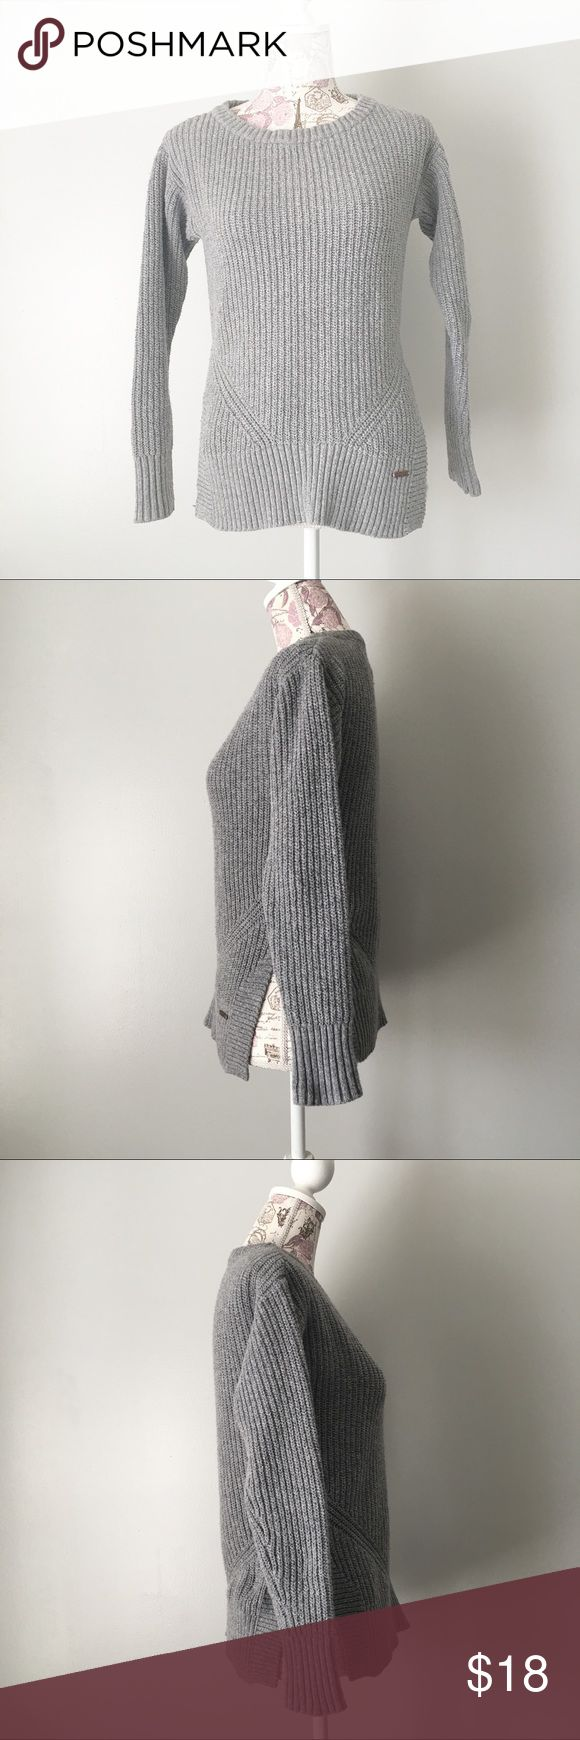 Gray Toms Sweater with side slits Time gray sweater with side slits. Size Large. EUC TOMS Sweaters Crew & Scoop Necks